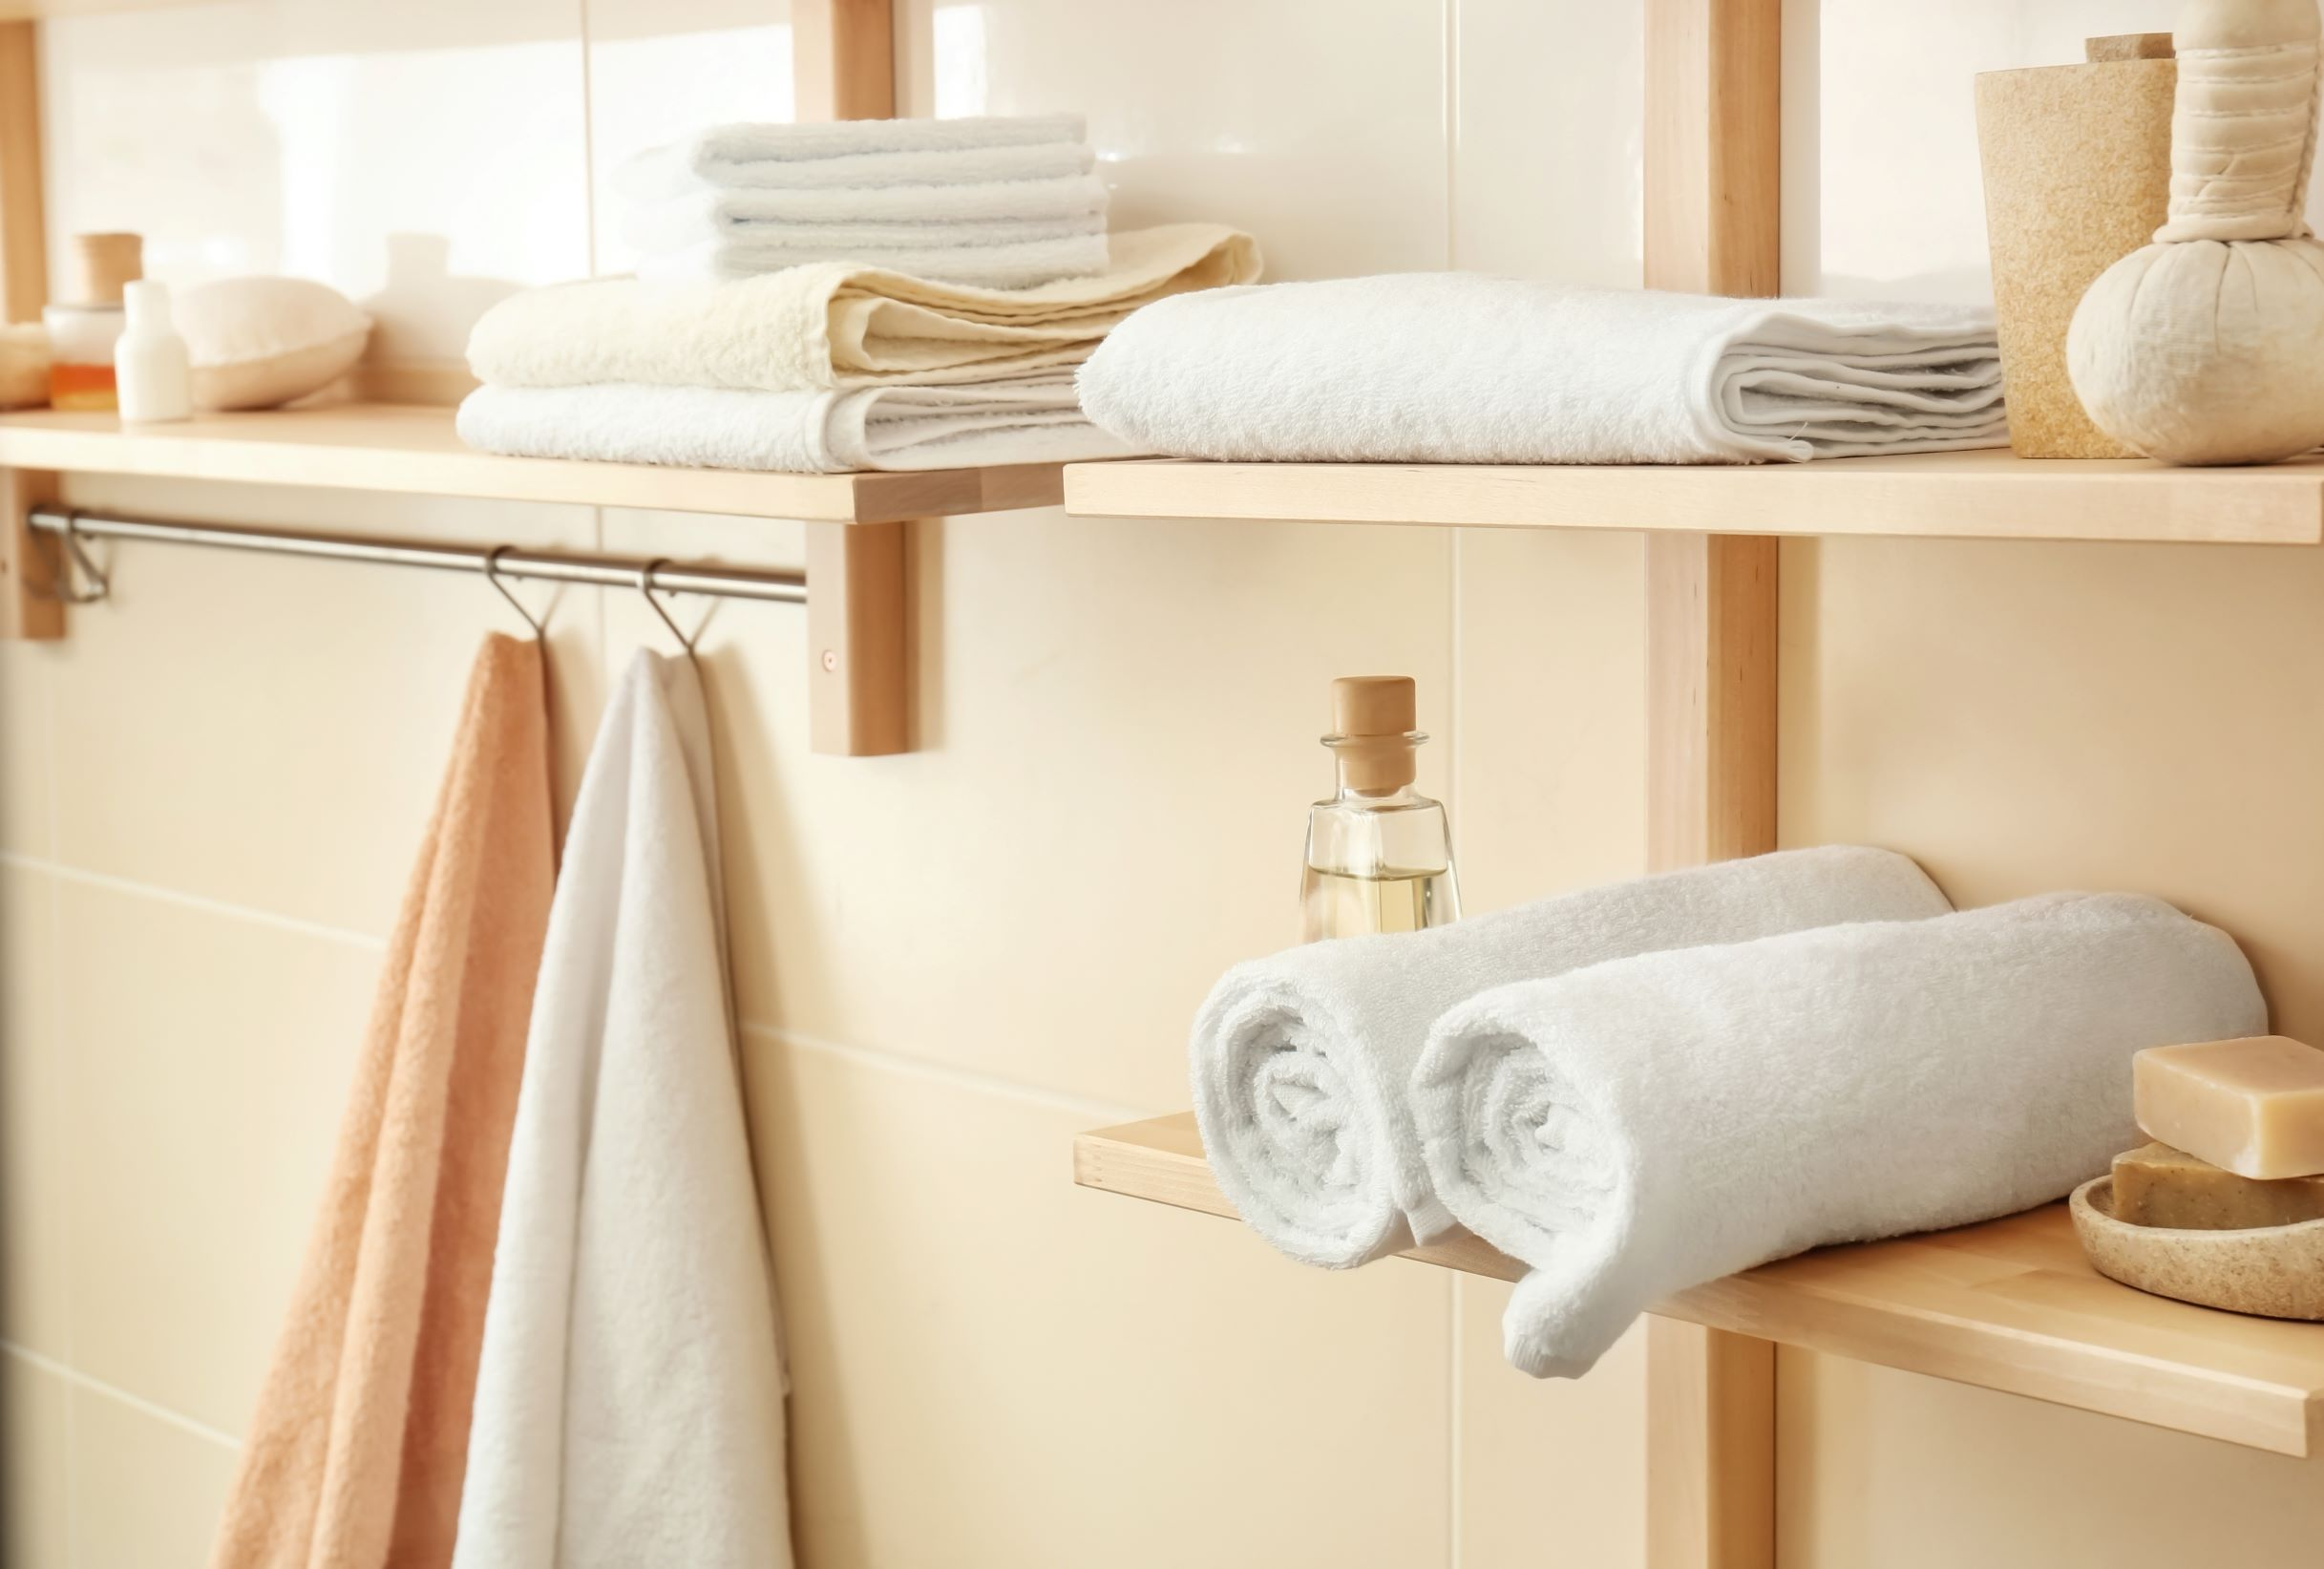 Smart bathroom storage solutions include using the walls to create shelves for towels.